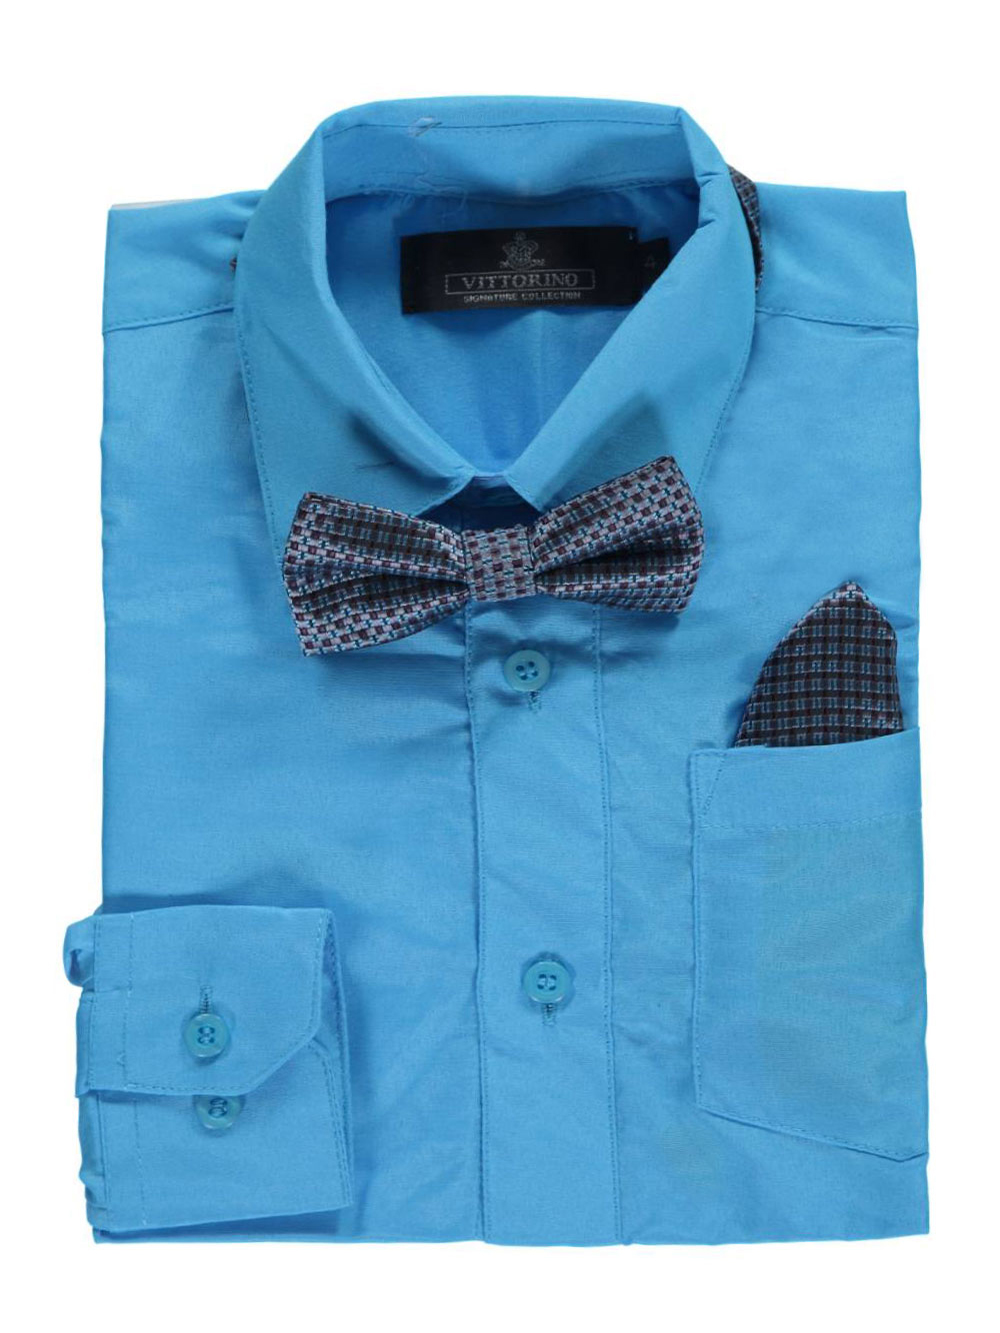 Vittorino Little Boys' Dress Shirt with Accessories (Sizes 4 - 7) - turquoise, 6